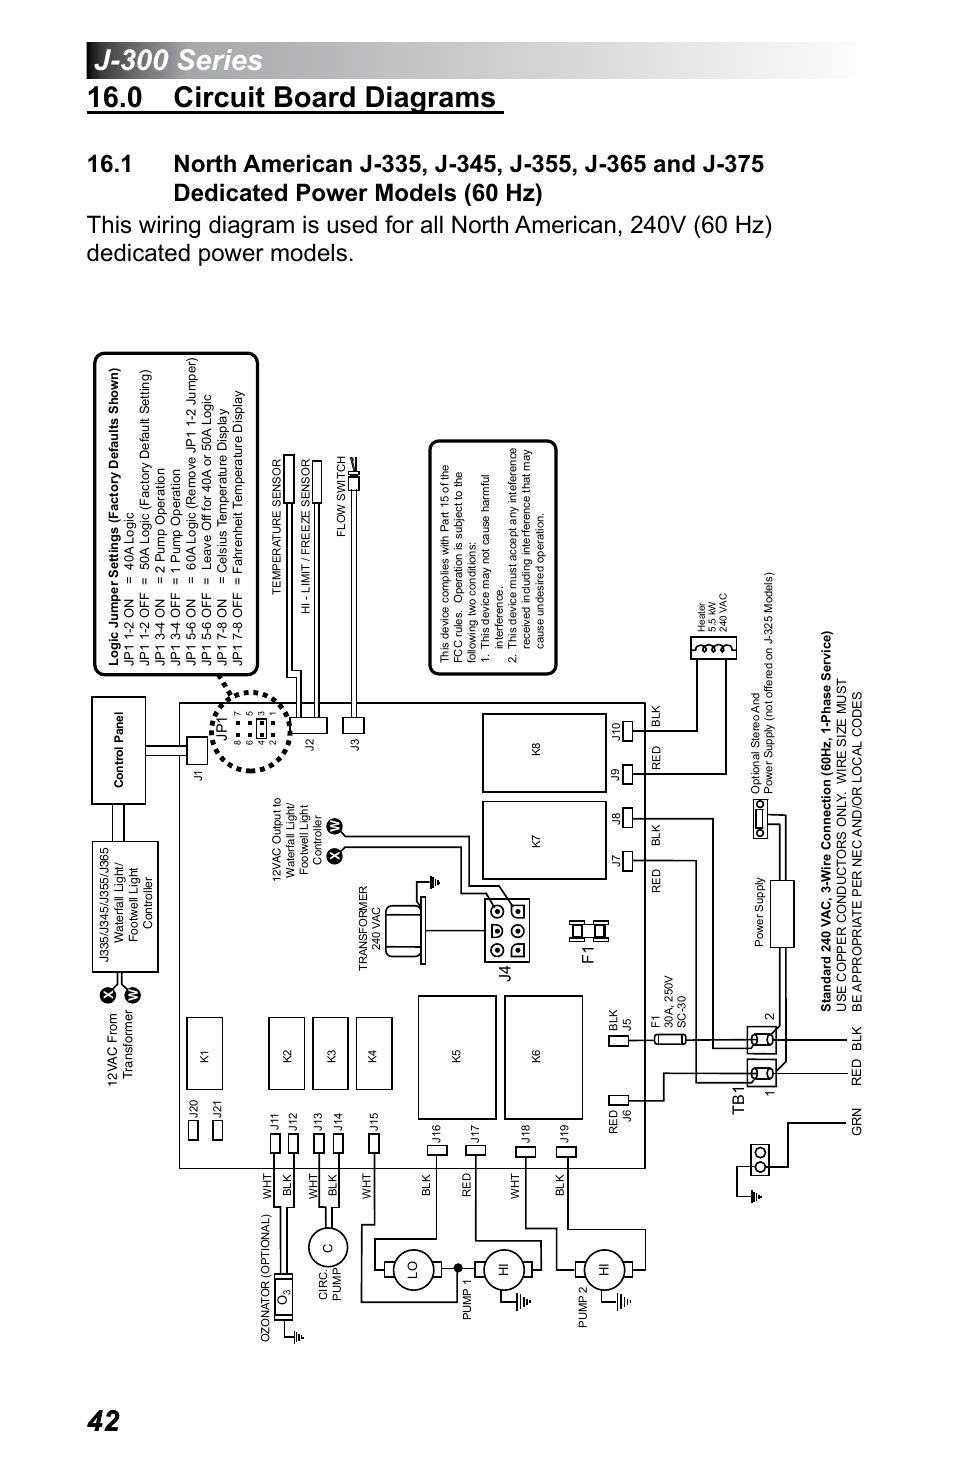 0 circuit board diagrams  dedicated power models  60 hz